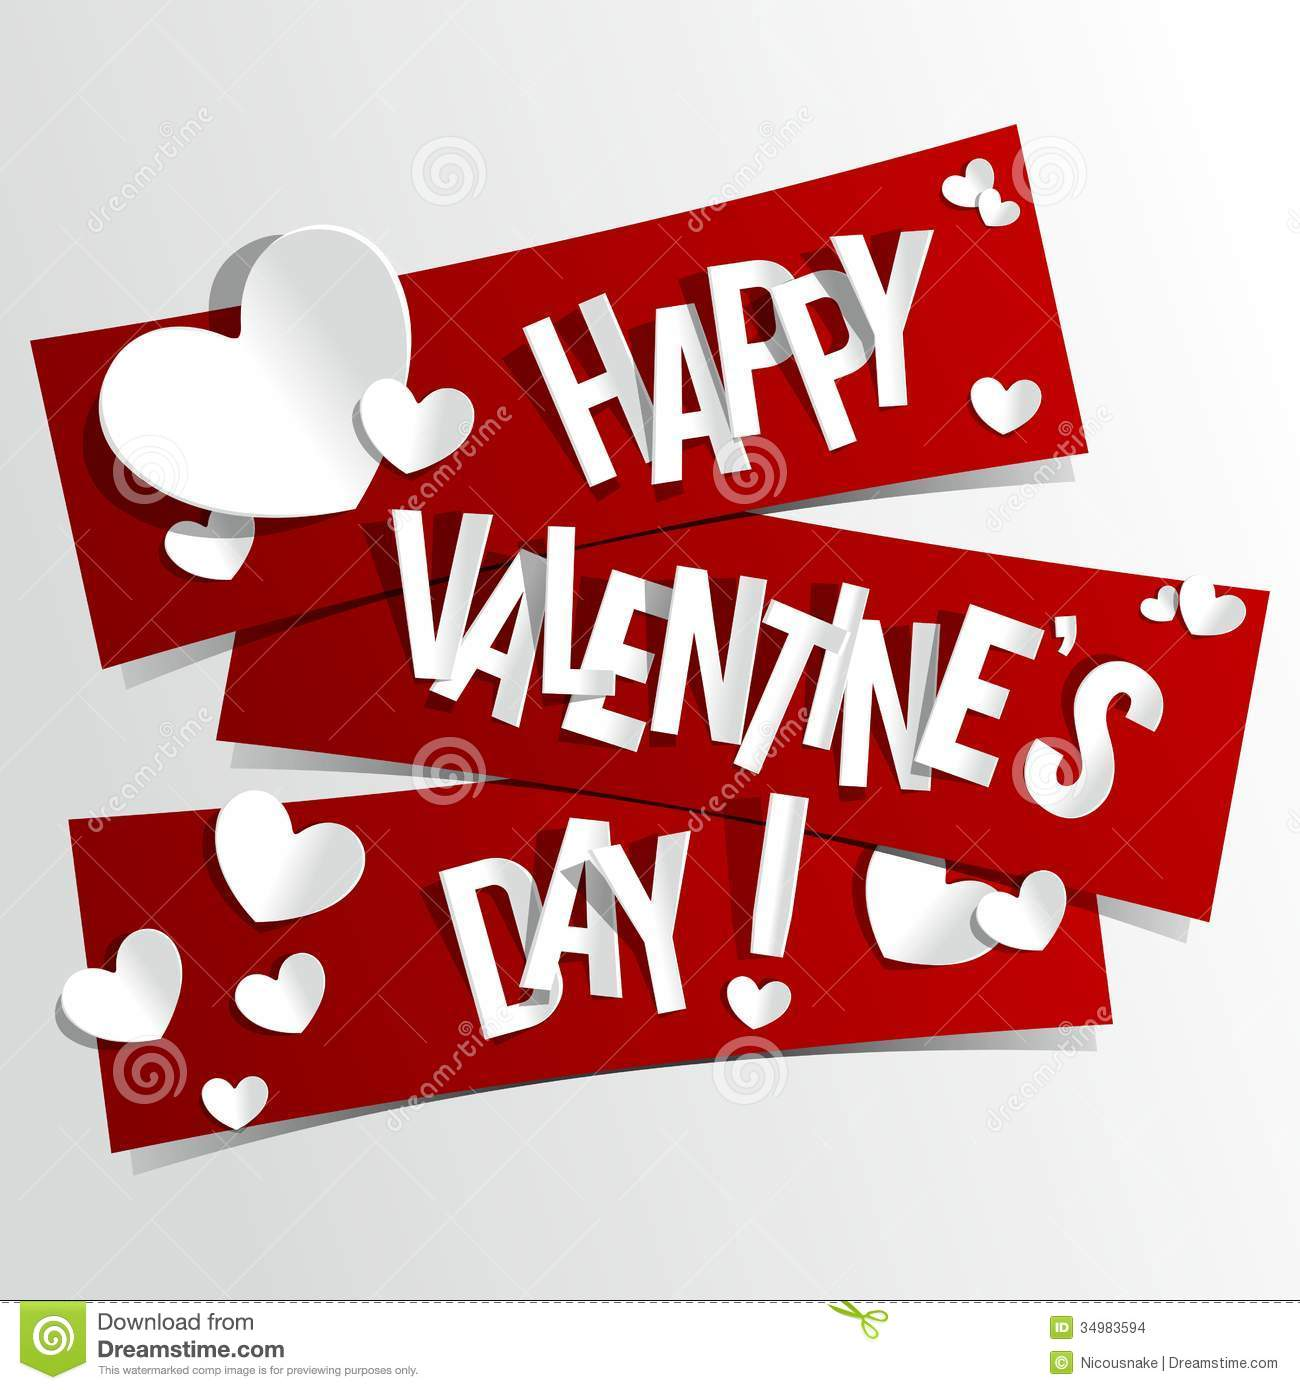 Happy valentines day card stock vector illustration of heart 34983594 happy valentines day card m4hsunfo Choice Image